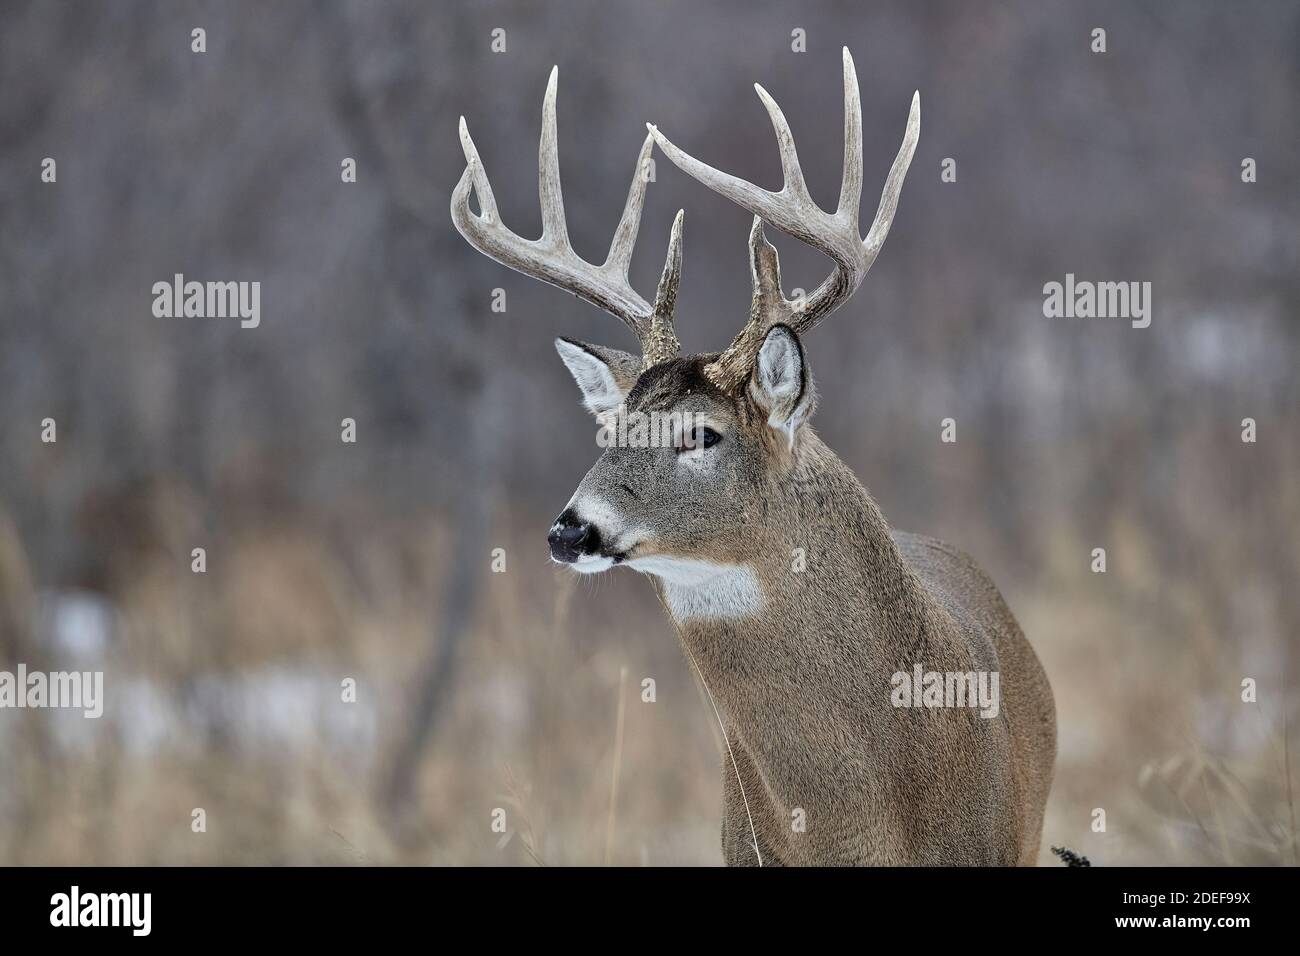 White-tailed deer (Odocoileus virginianus) stag  with full growth antlers, Calgary, Alberta, Canada Stock Photo